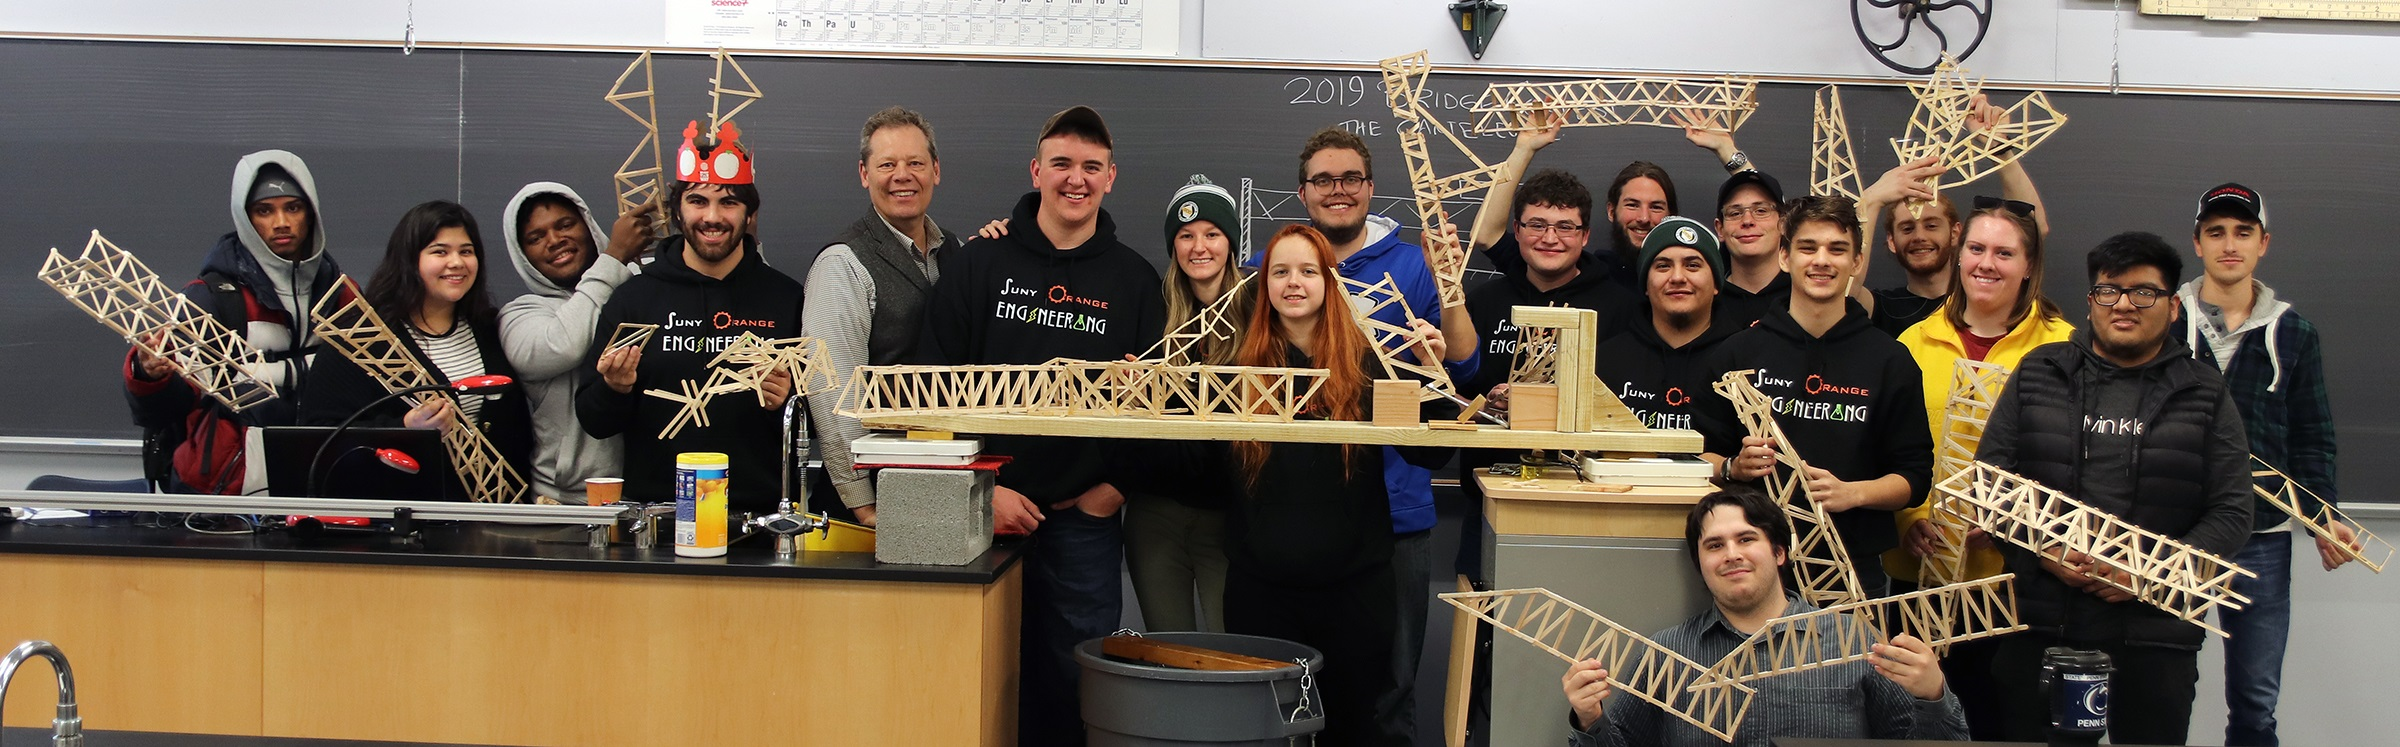 engineering bridge group